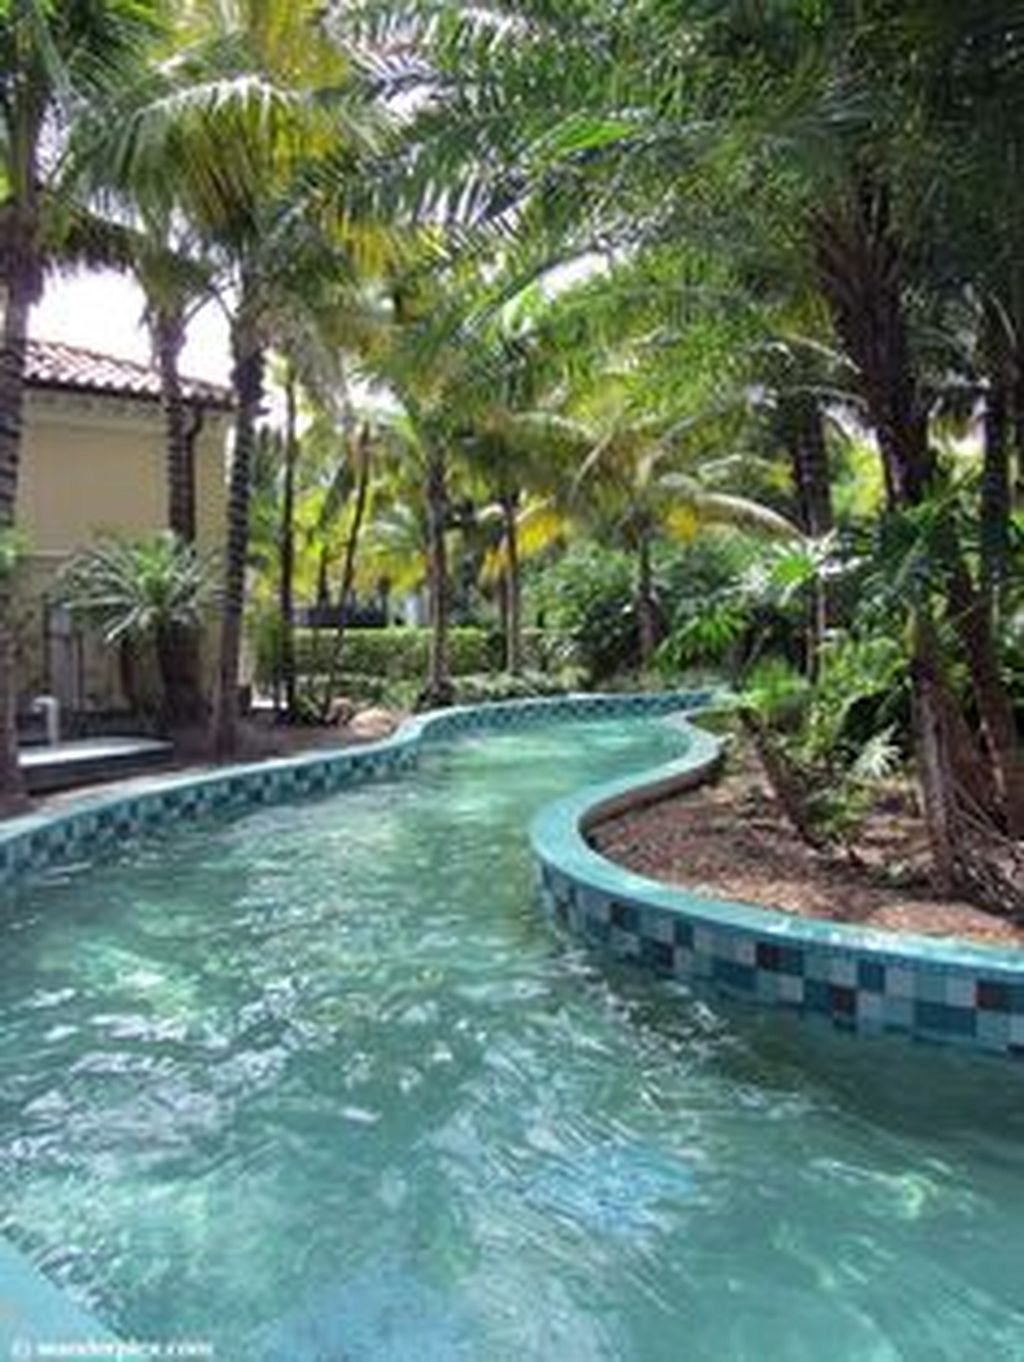 Insanely Cool Lazy River Pool Ideas In Home Backyard(13 ...